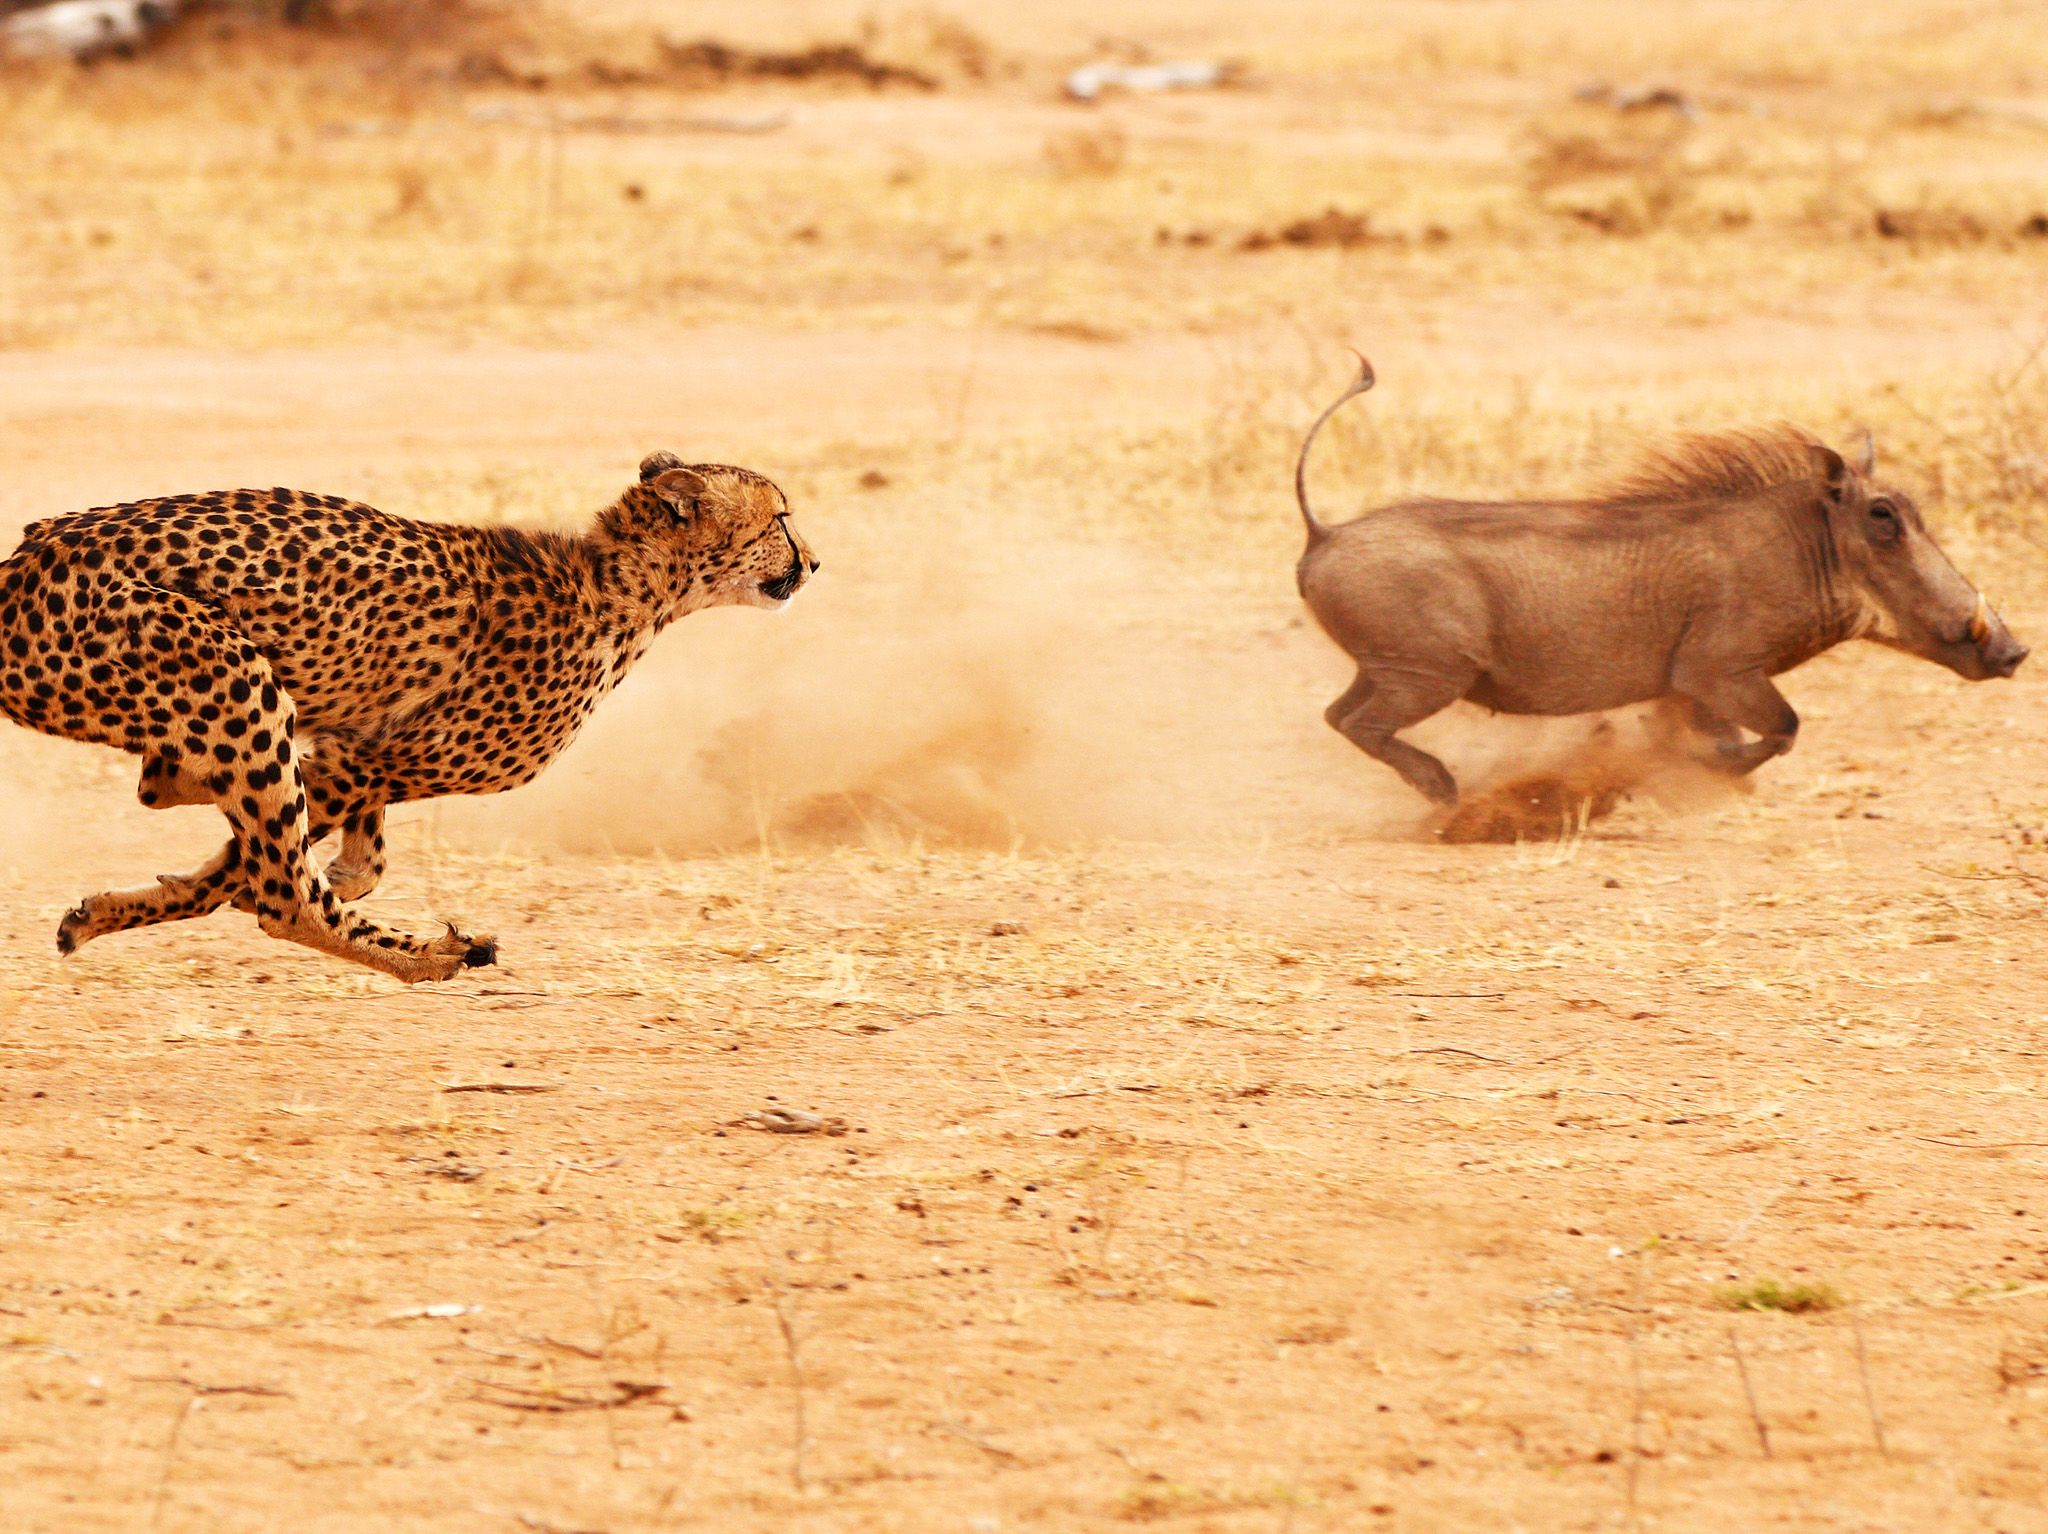 Cheetah chasing a warthog at top speed. This image is from World's Deadliest Lion. [Photo of the day - December 2019]